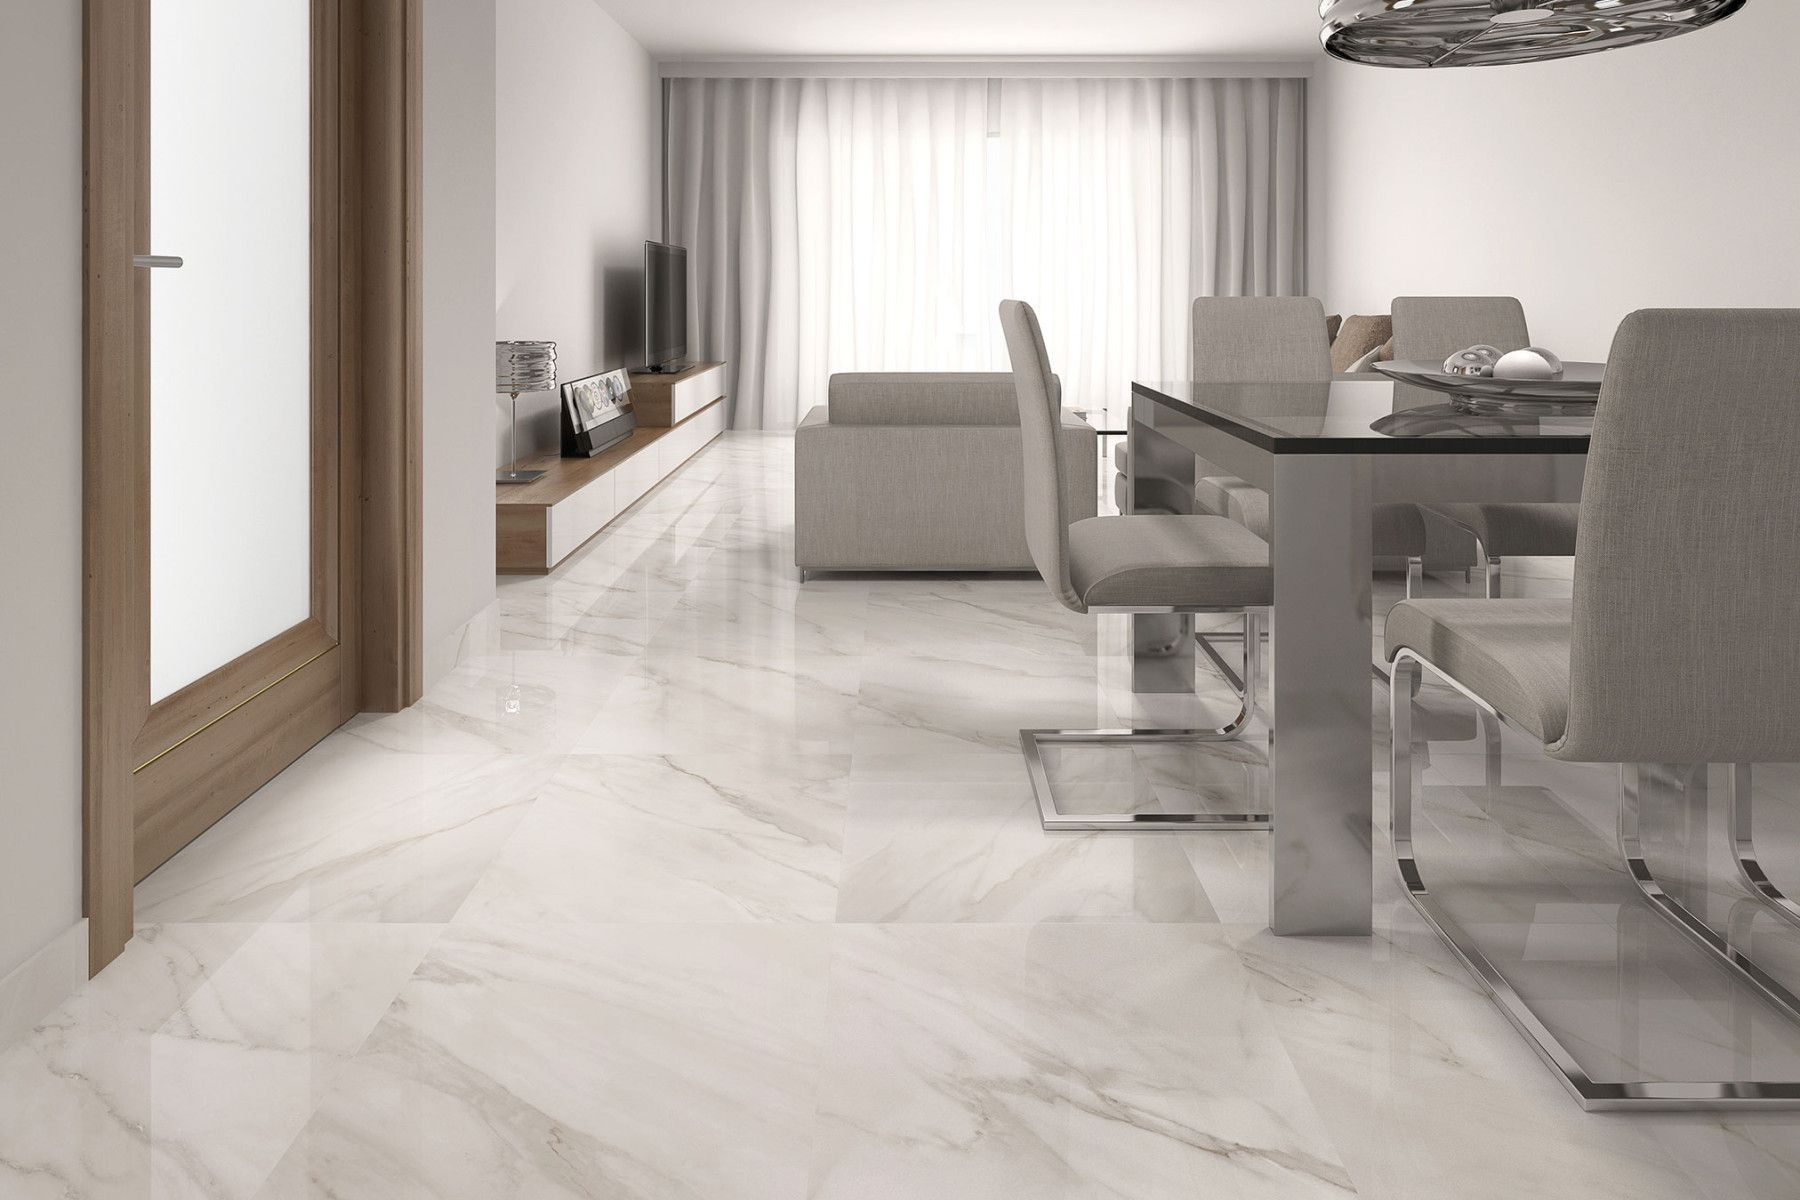 Calacatta geotiles tile and quartz pinterest calacatta white gloss floor tiles at trade prices from direct tile warehouse see quality large floor tiles including stylish large white tiles dailygadgetfo Image collections